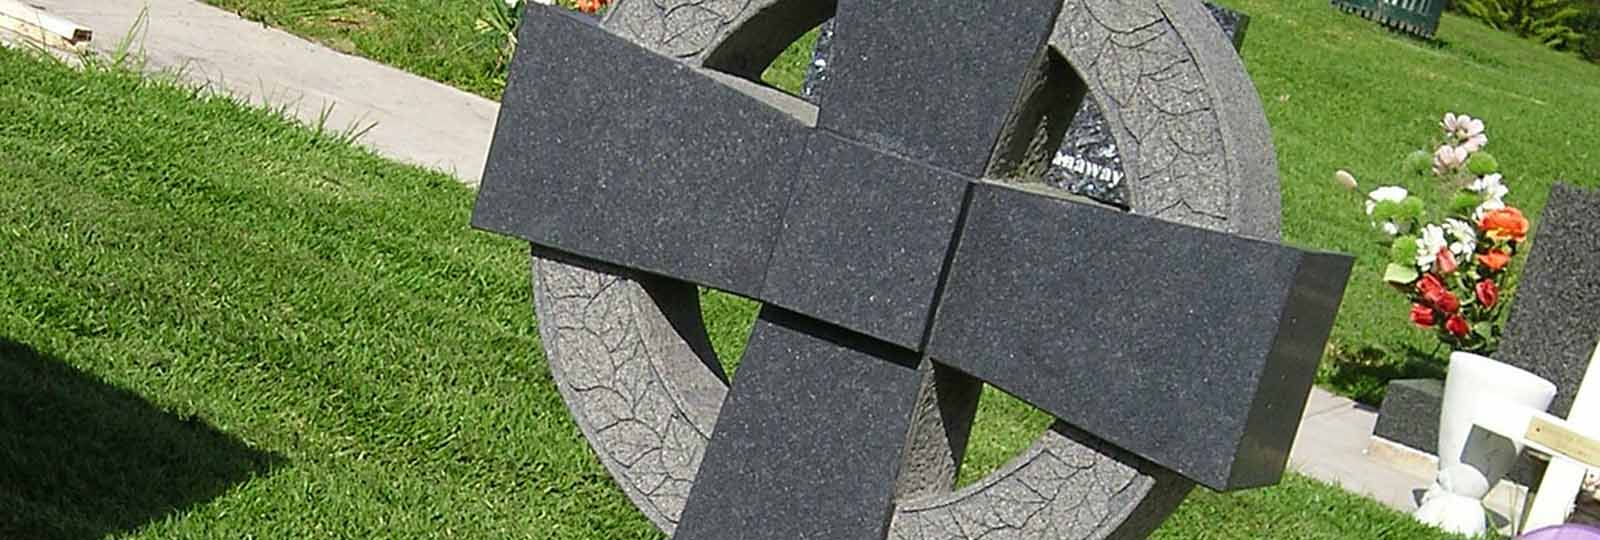 cross headstones and memorials